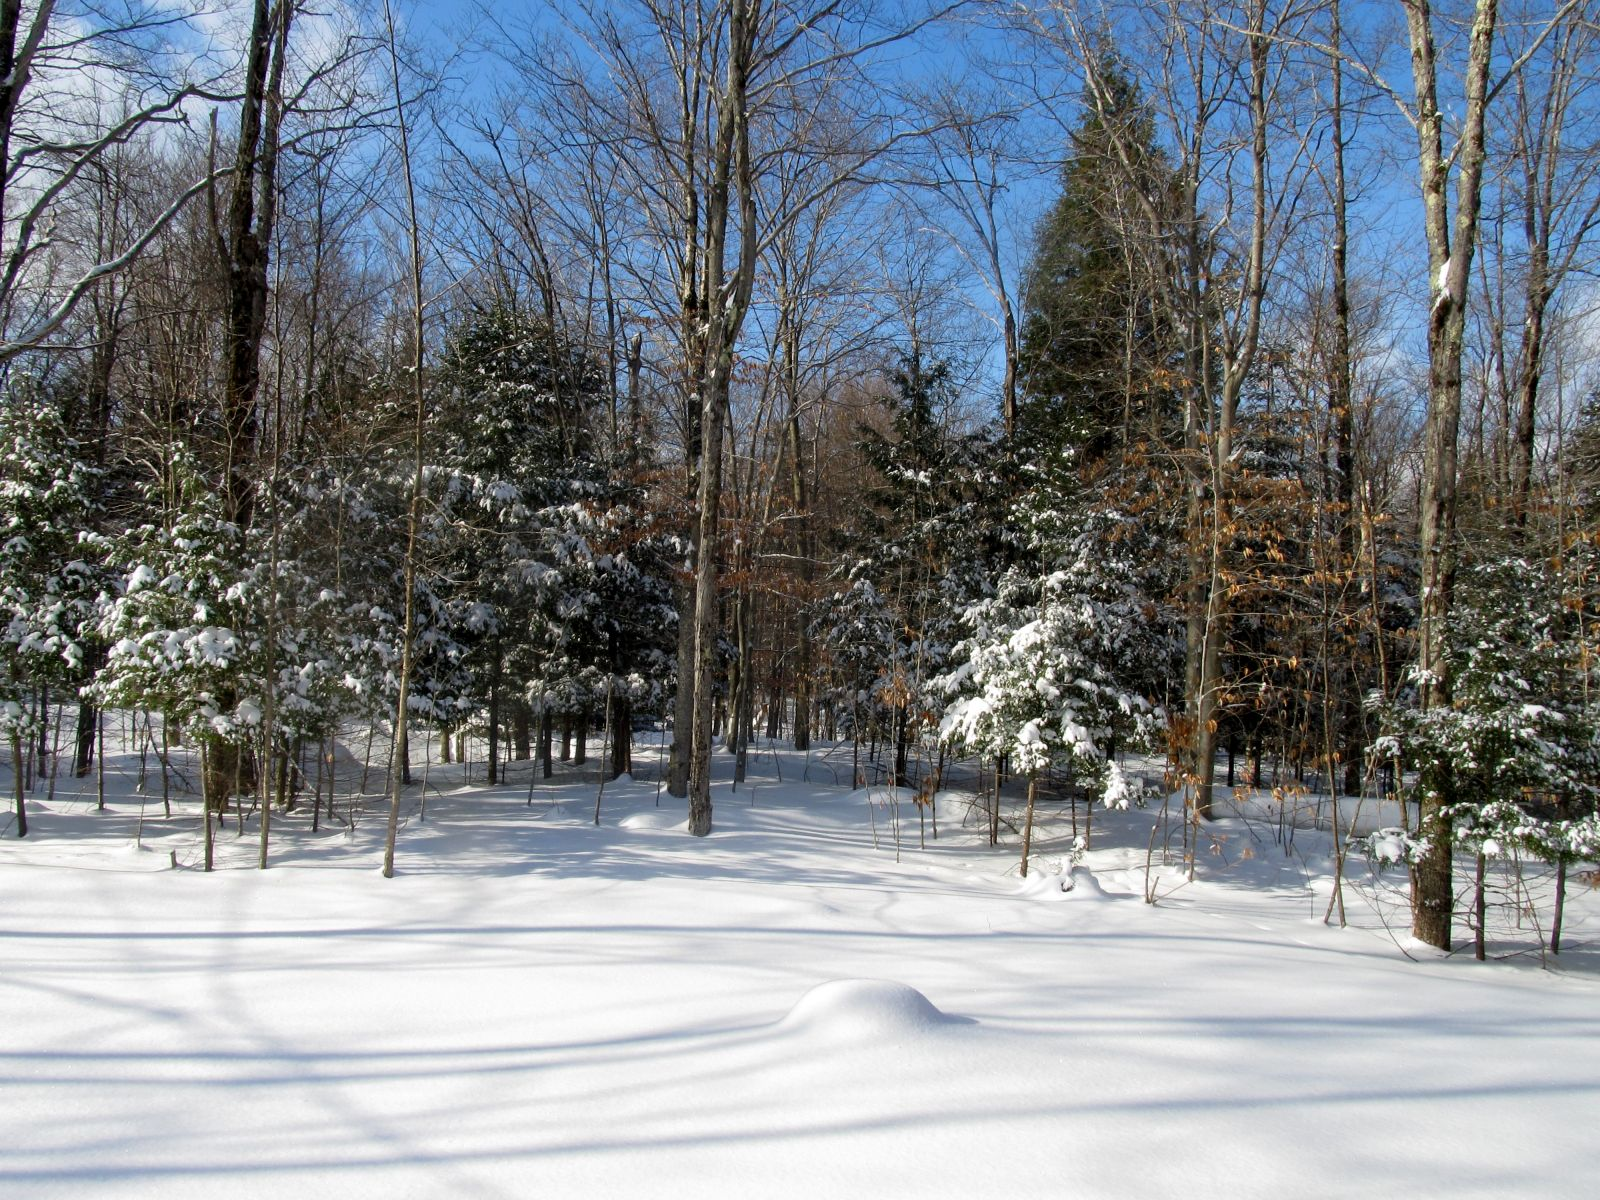 It can be a winter wonderland!